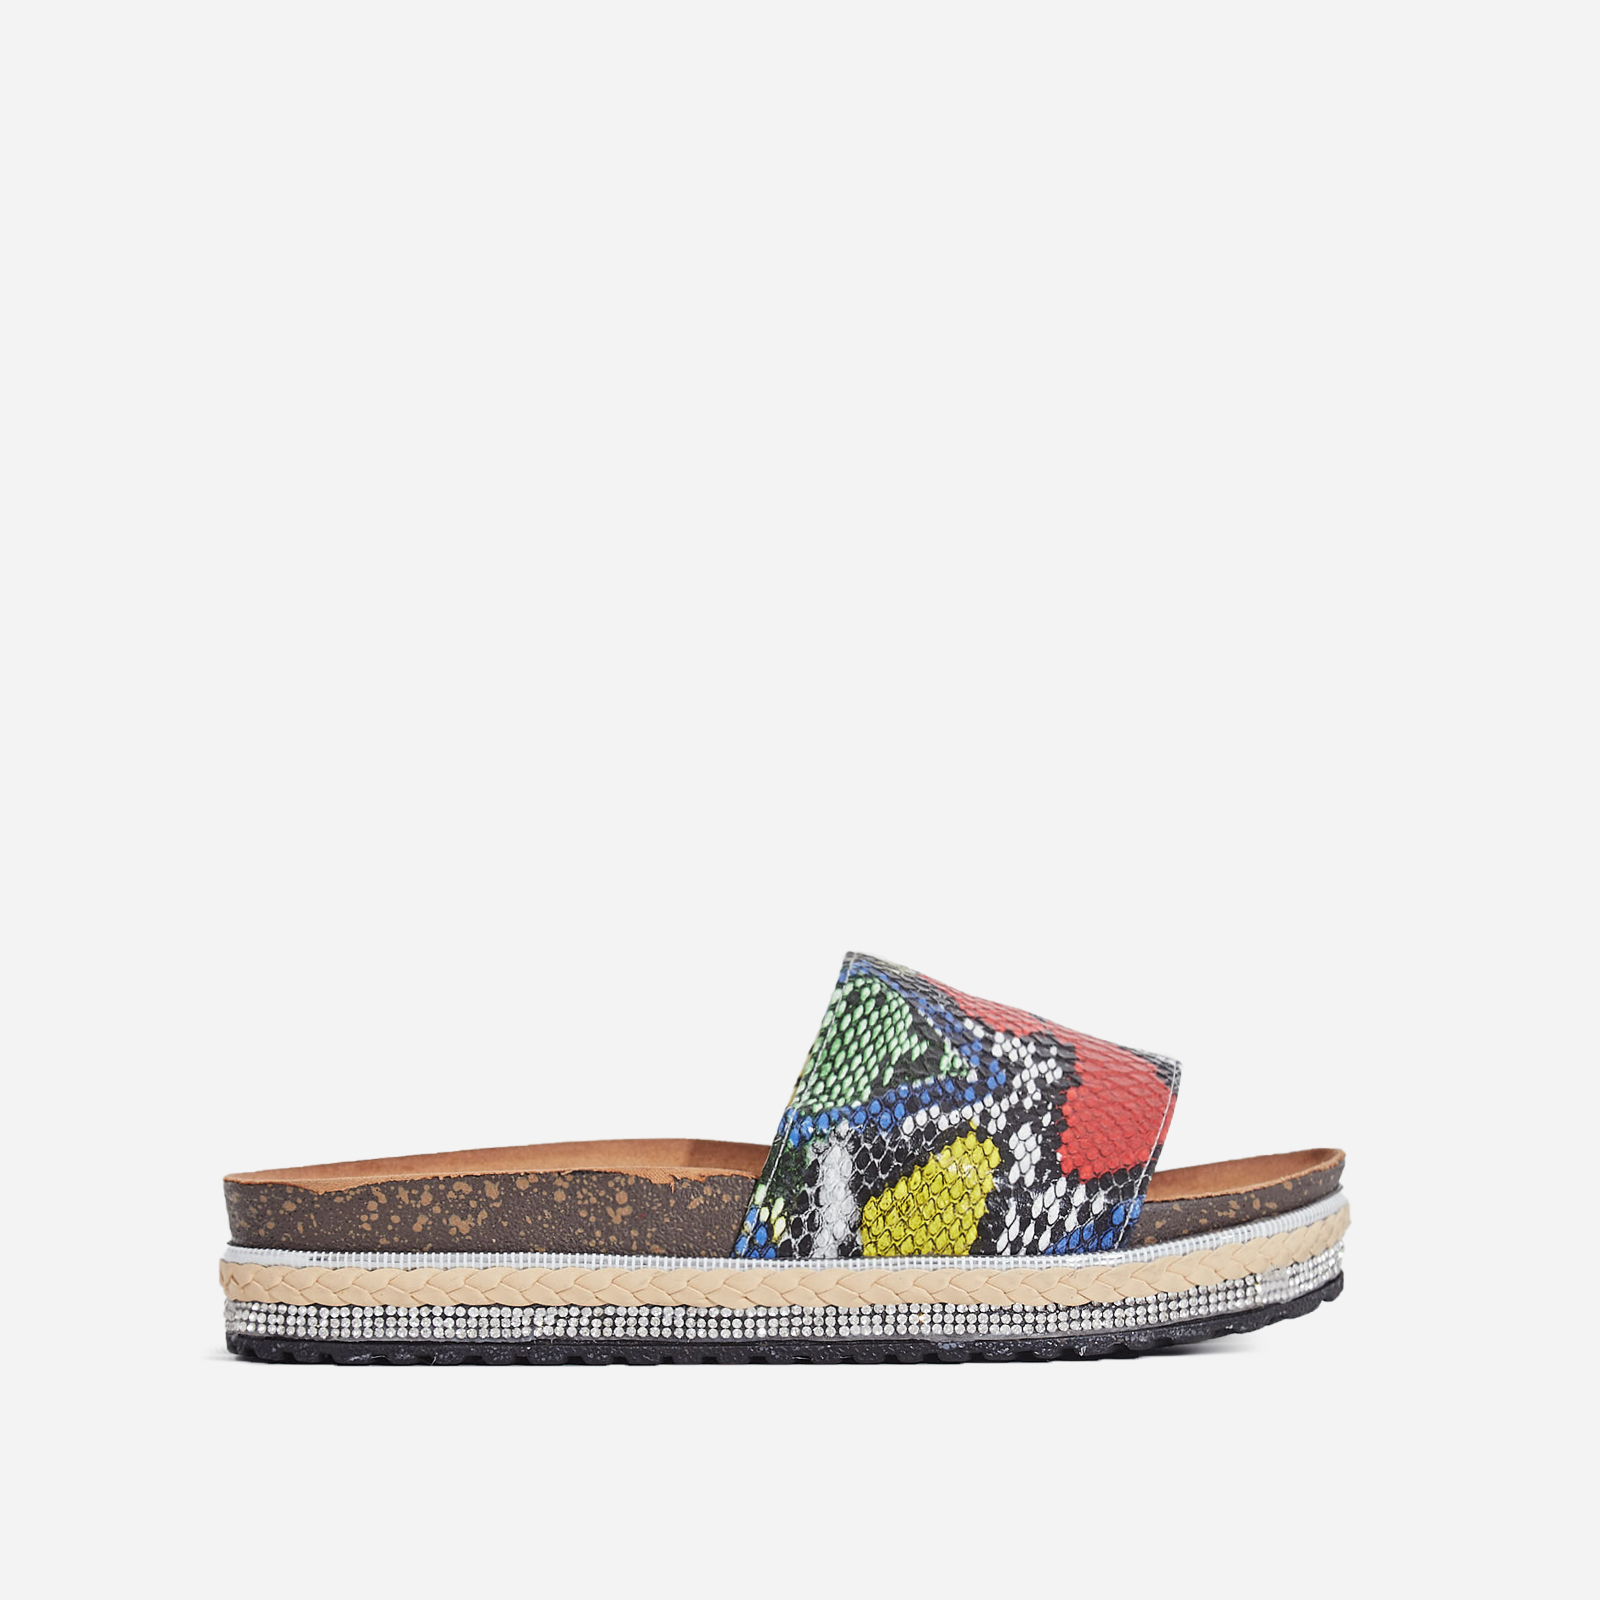 Calli Studded Detail Espadrille Sandal In Multi Snake Print Faux Leather